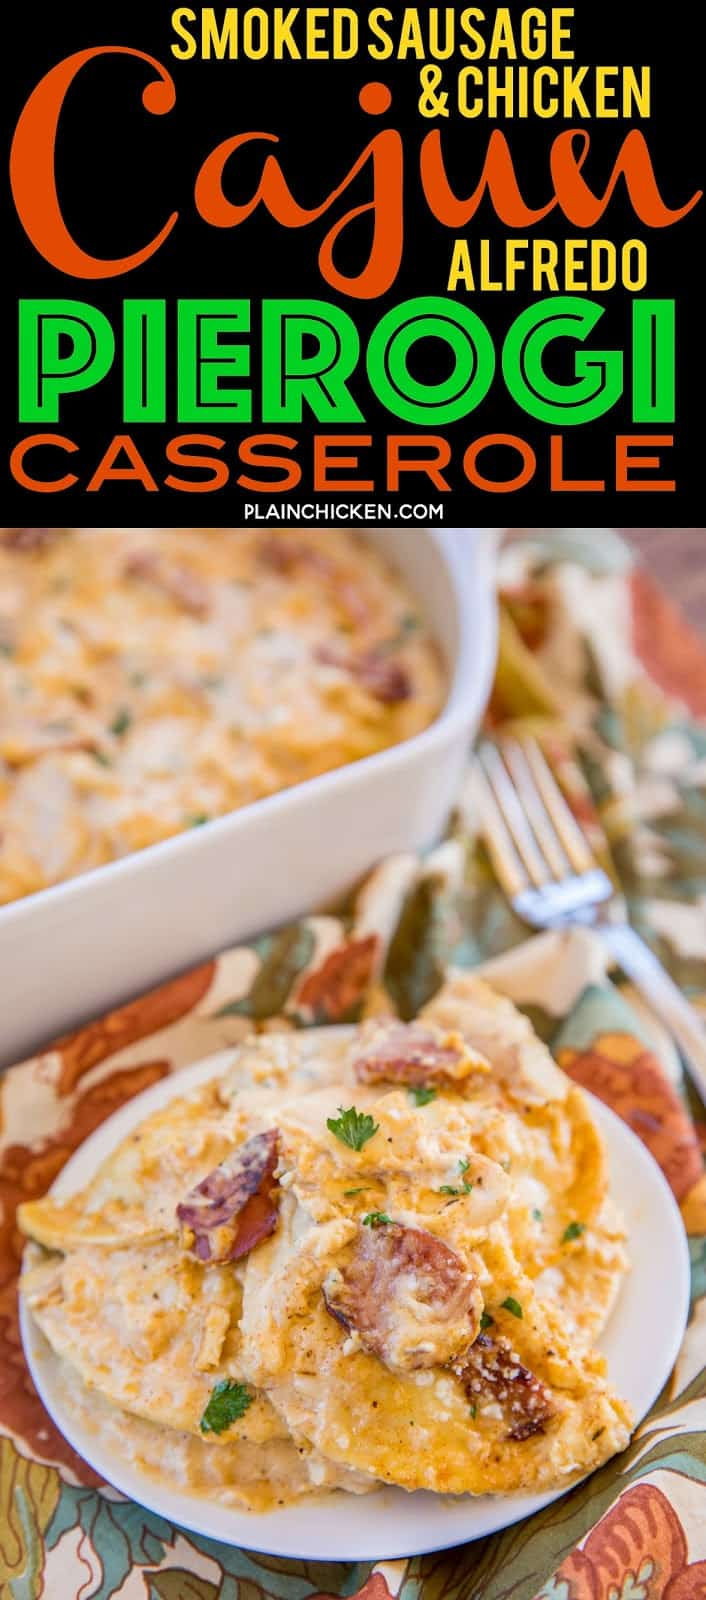 Smoked Sausage & Chicken Cajun Alfredo Pierogi Casserole - this is AMAZING!!! Super easy to make and everyone RAVES about it. Only 6 ingredients - smoked sausage, chicken, Alfredo sauce, cajun seasoning, pieorgies and parmesan cheese. Can make ahead of time and refrigerate or freeze for later. Perfect for any Mardi Gras celebrations! #casserole #mardigras #cajun #freezermeal #chickencasserole